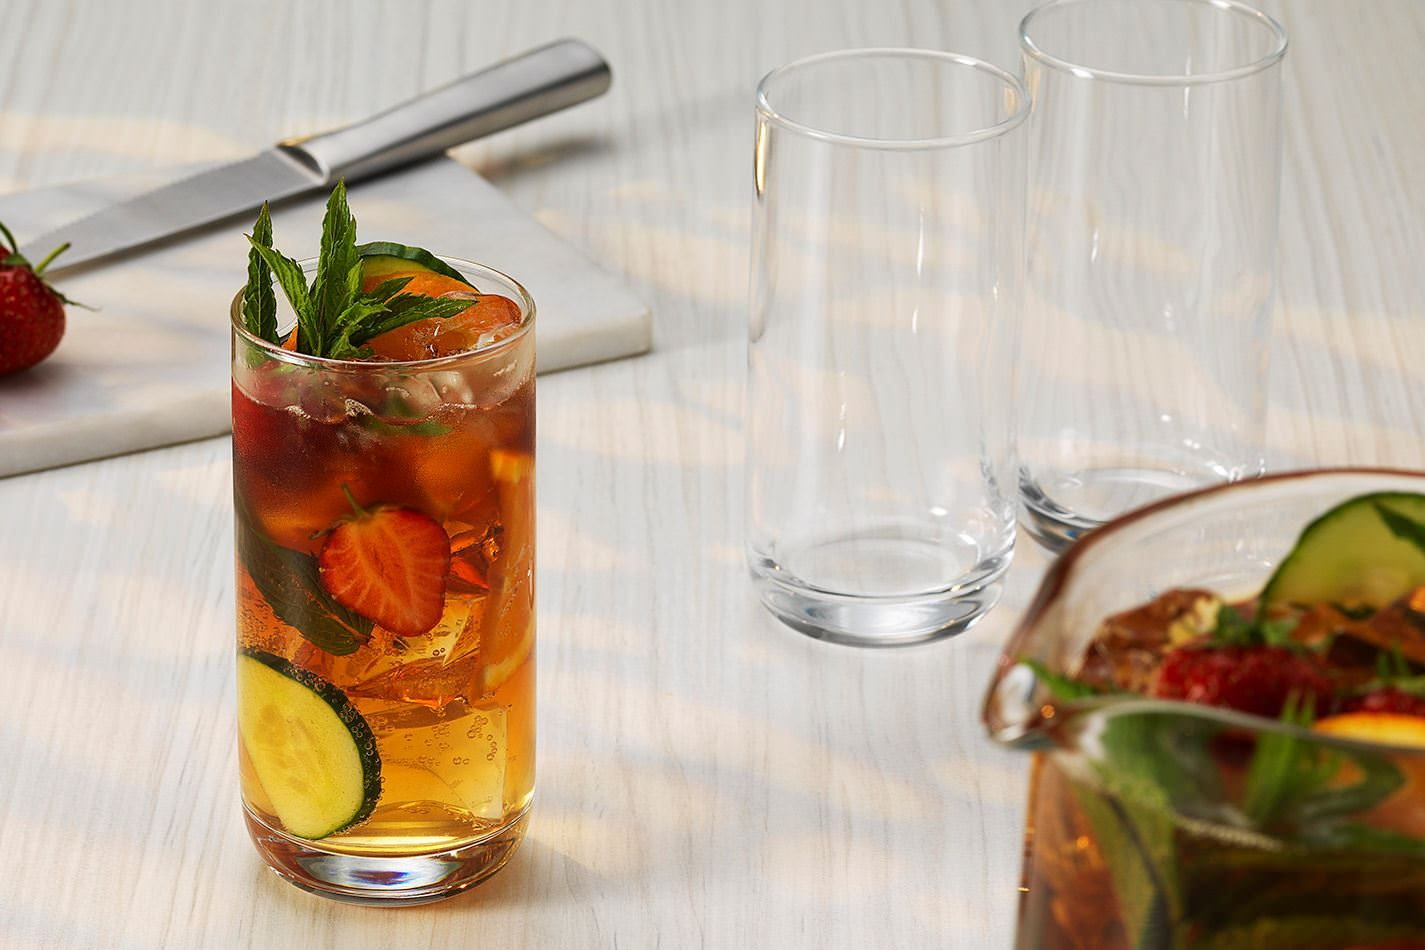 Pimm 39 s recipe pimm 39 s cocktails drink recipes for for What to mix with pimms